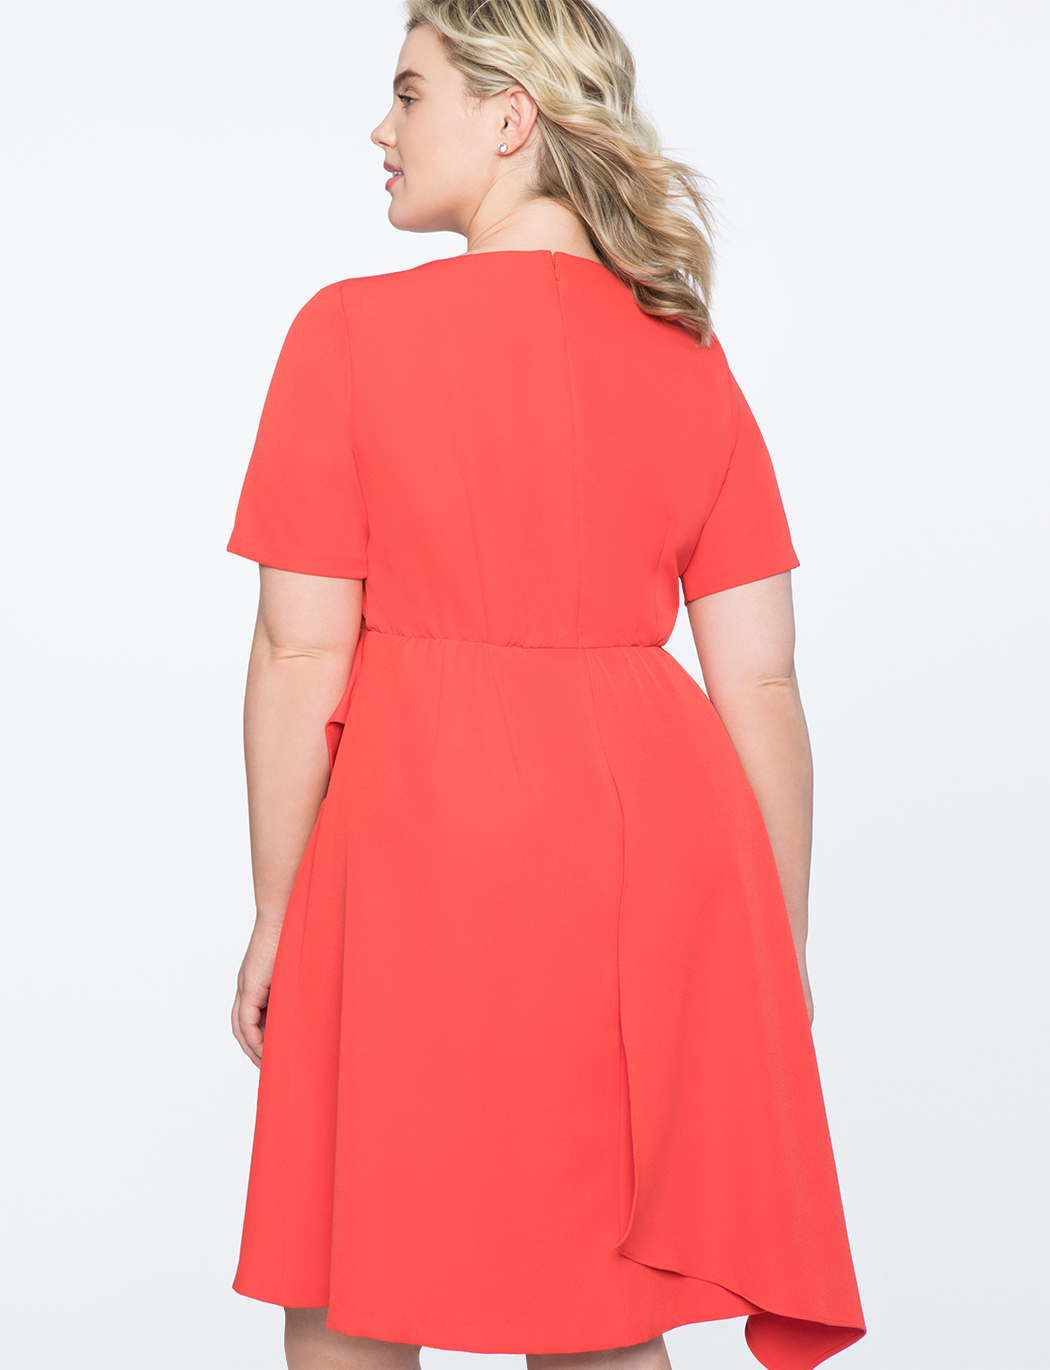 Short Sleeve Dress with Skirt Overlay